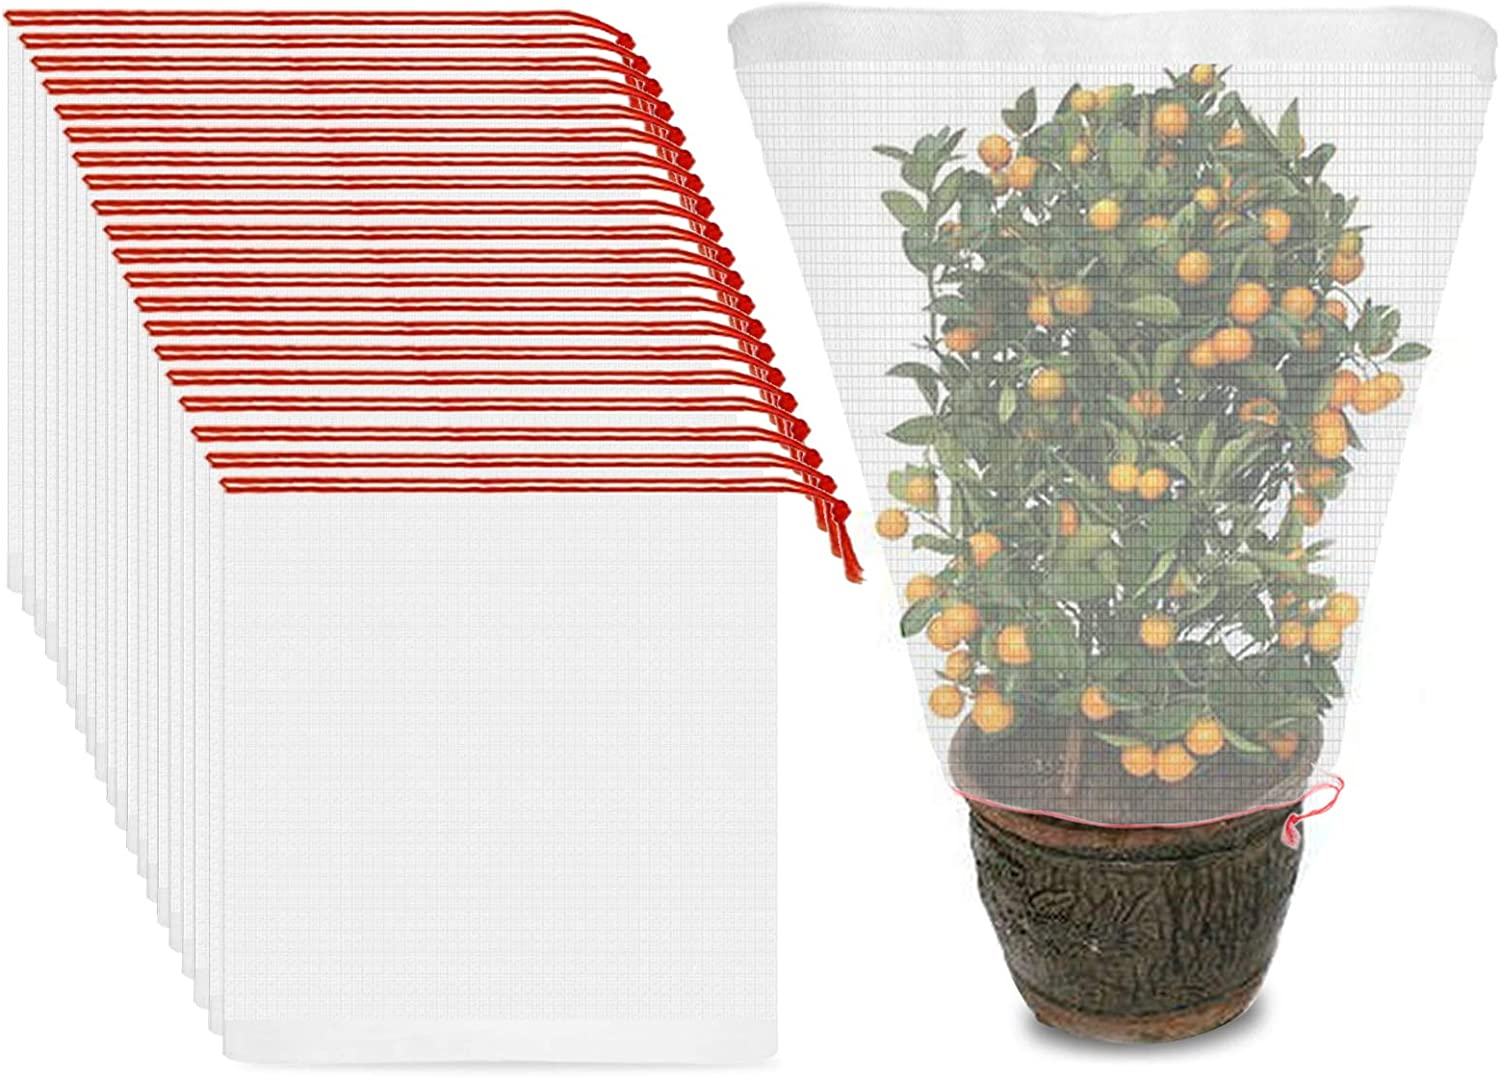 ENPOINT 20PCS Tomato Plant Netting Mesh, 37 x 23 inch Tree Bird Net for Bananas, Reusable Insect Mesh with Drawstring, Garden Plant Protective Cover Tomato Barrier Bag for Vegetables Fruits Flower